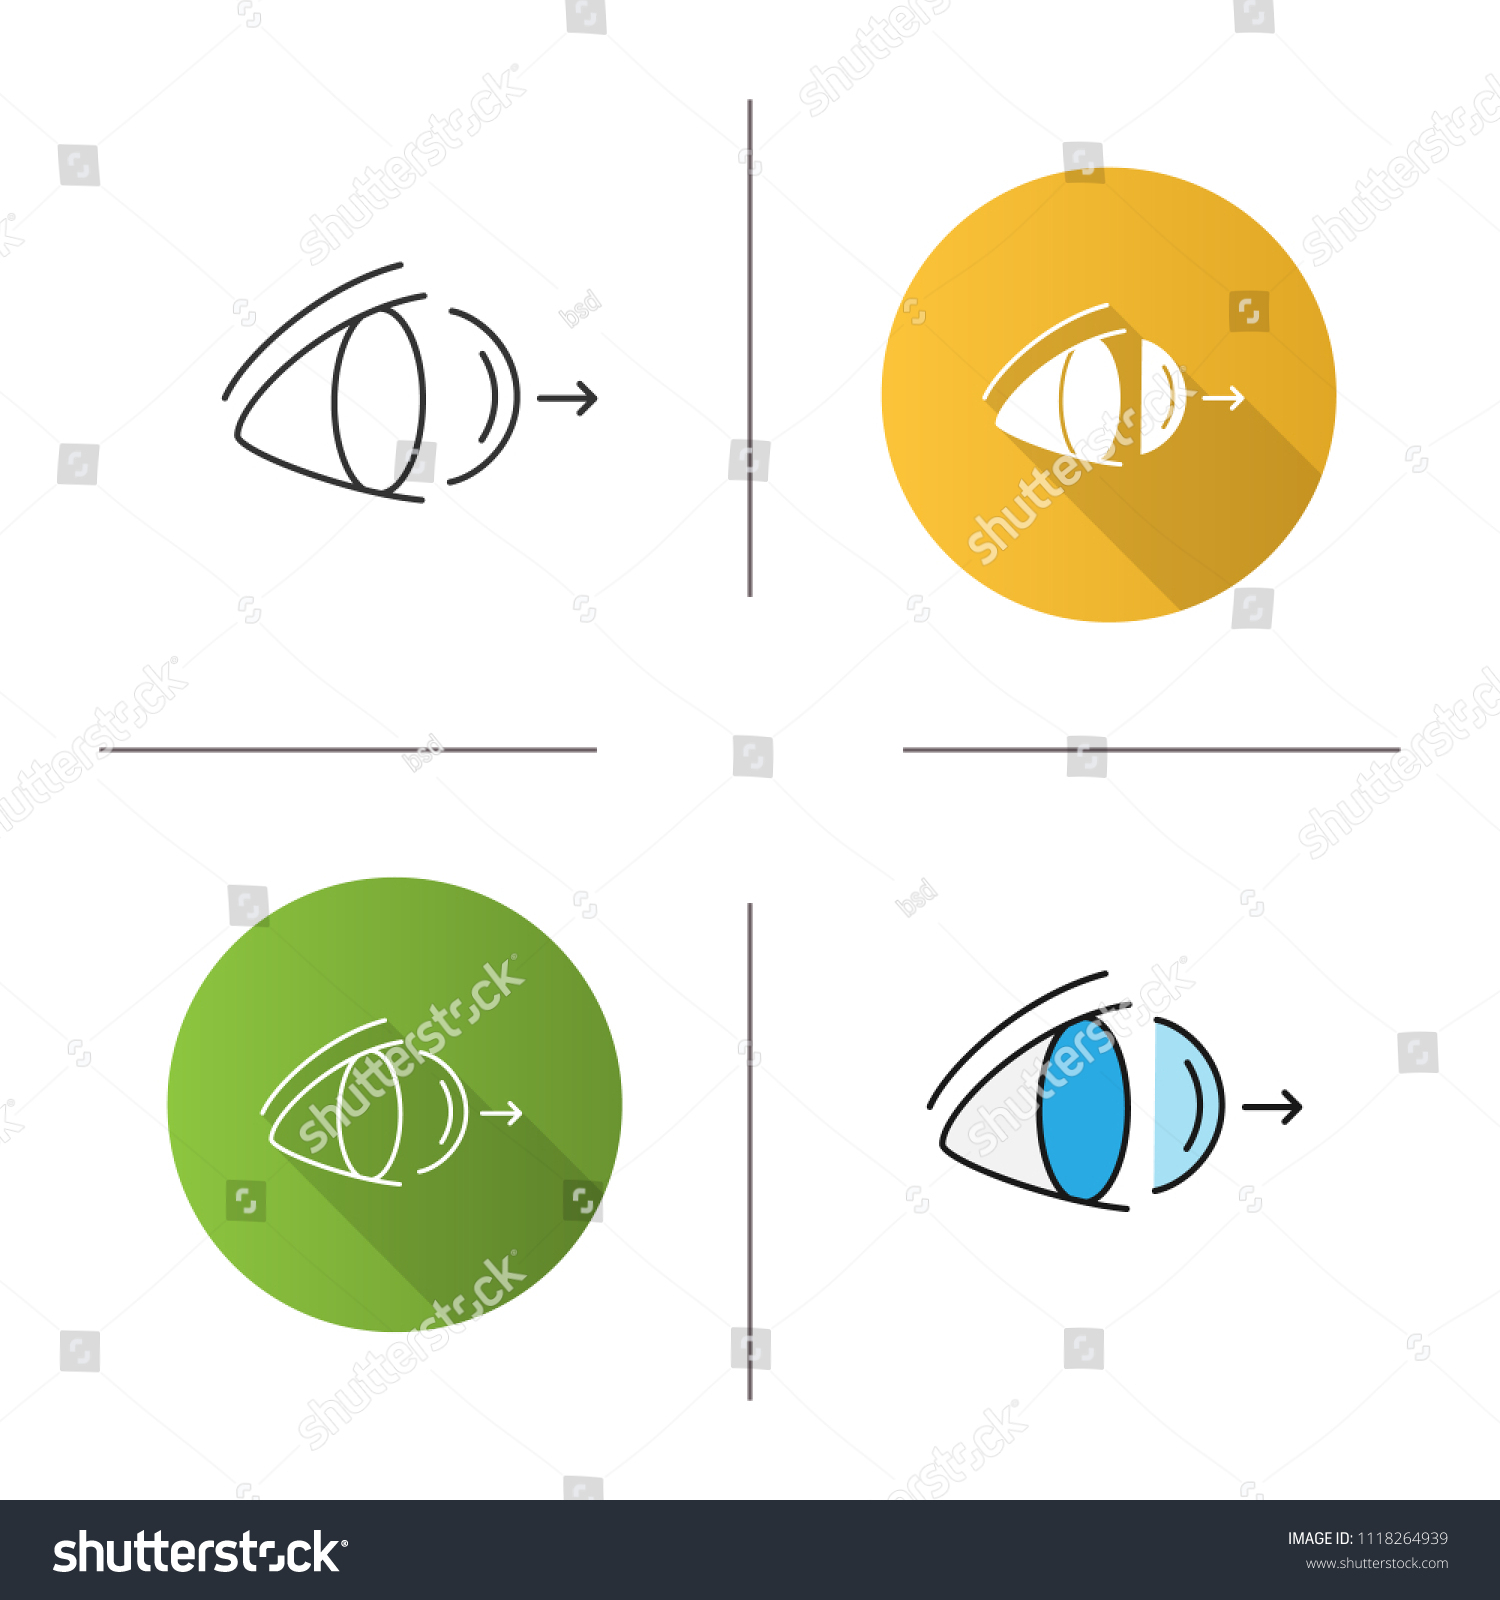 hight resolution of eye contact lenses removing icon flat design linear and color styles isolated raster